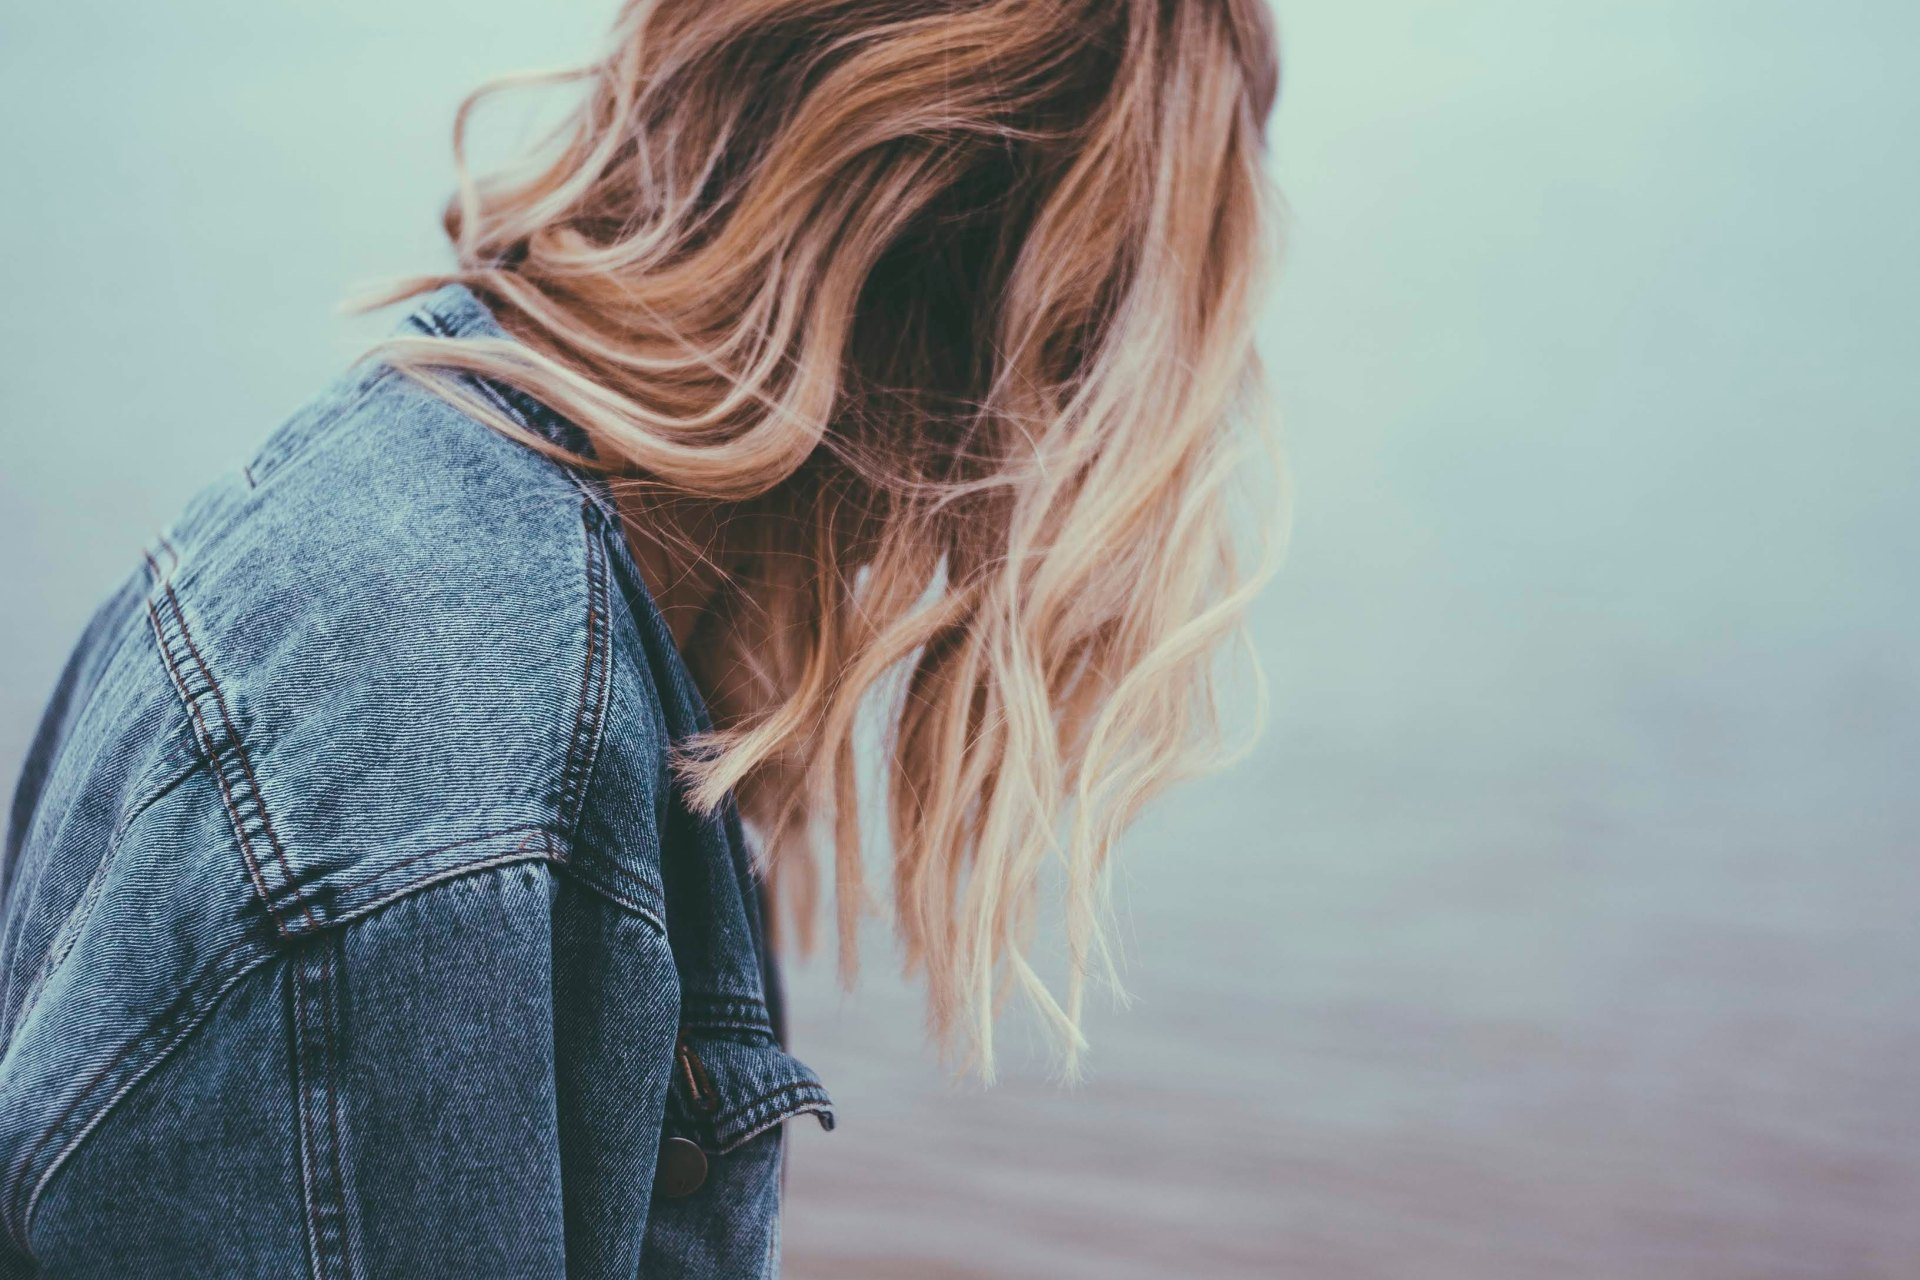 5 Ways Love For Yourself Will Help You Let Go After A Breakup